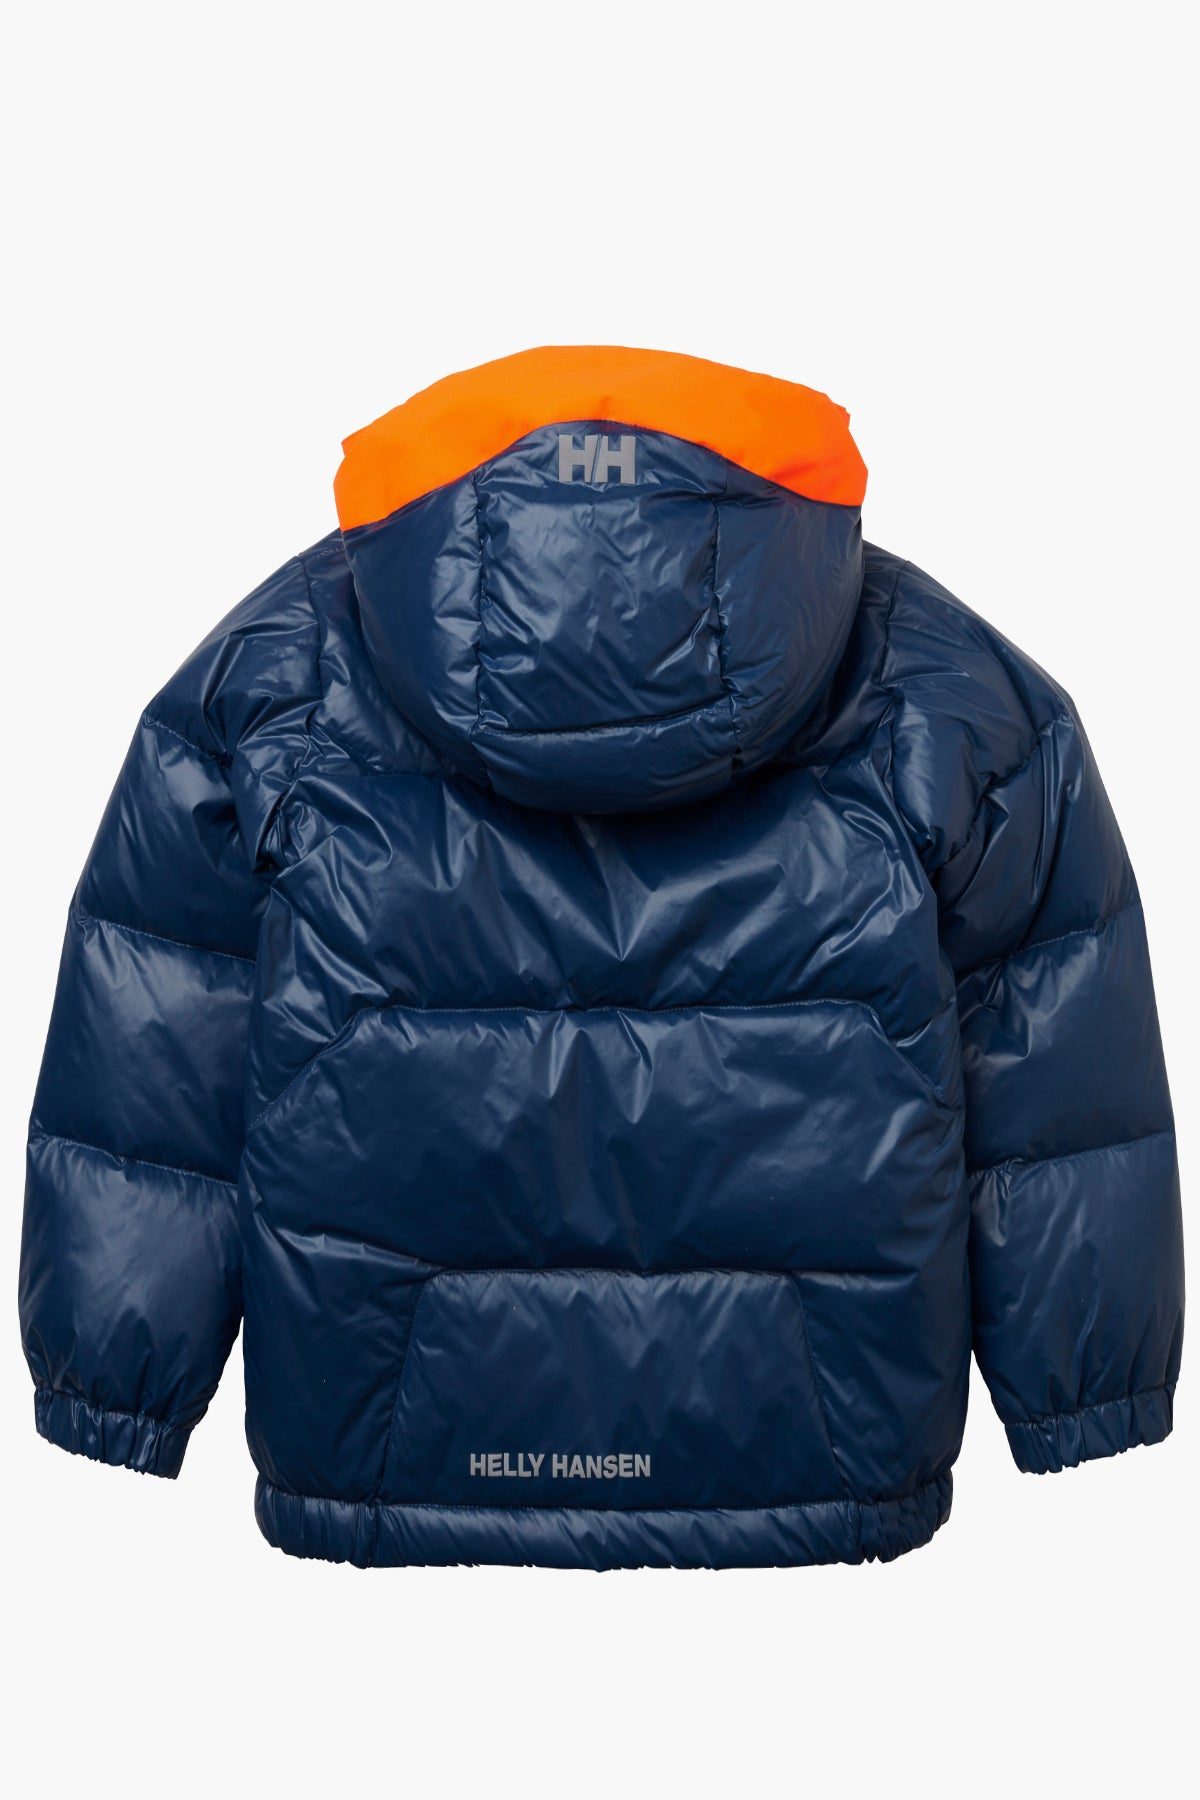 Helly Hansen Frost Down Boys Jacket - North Sea Blue